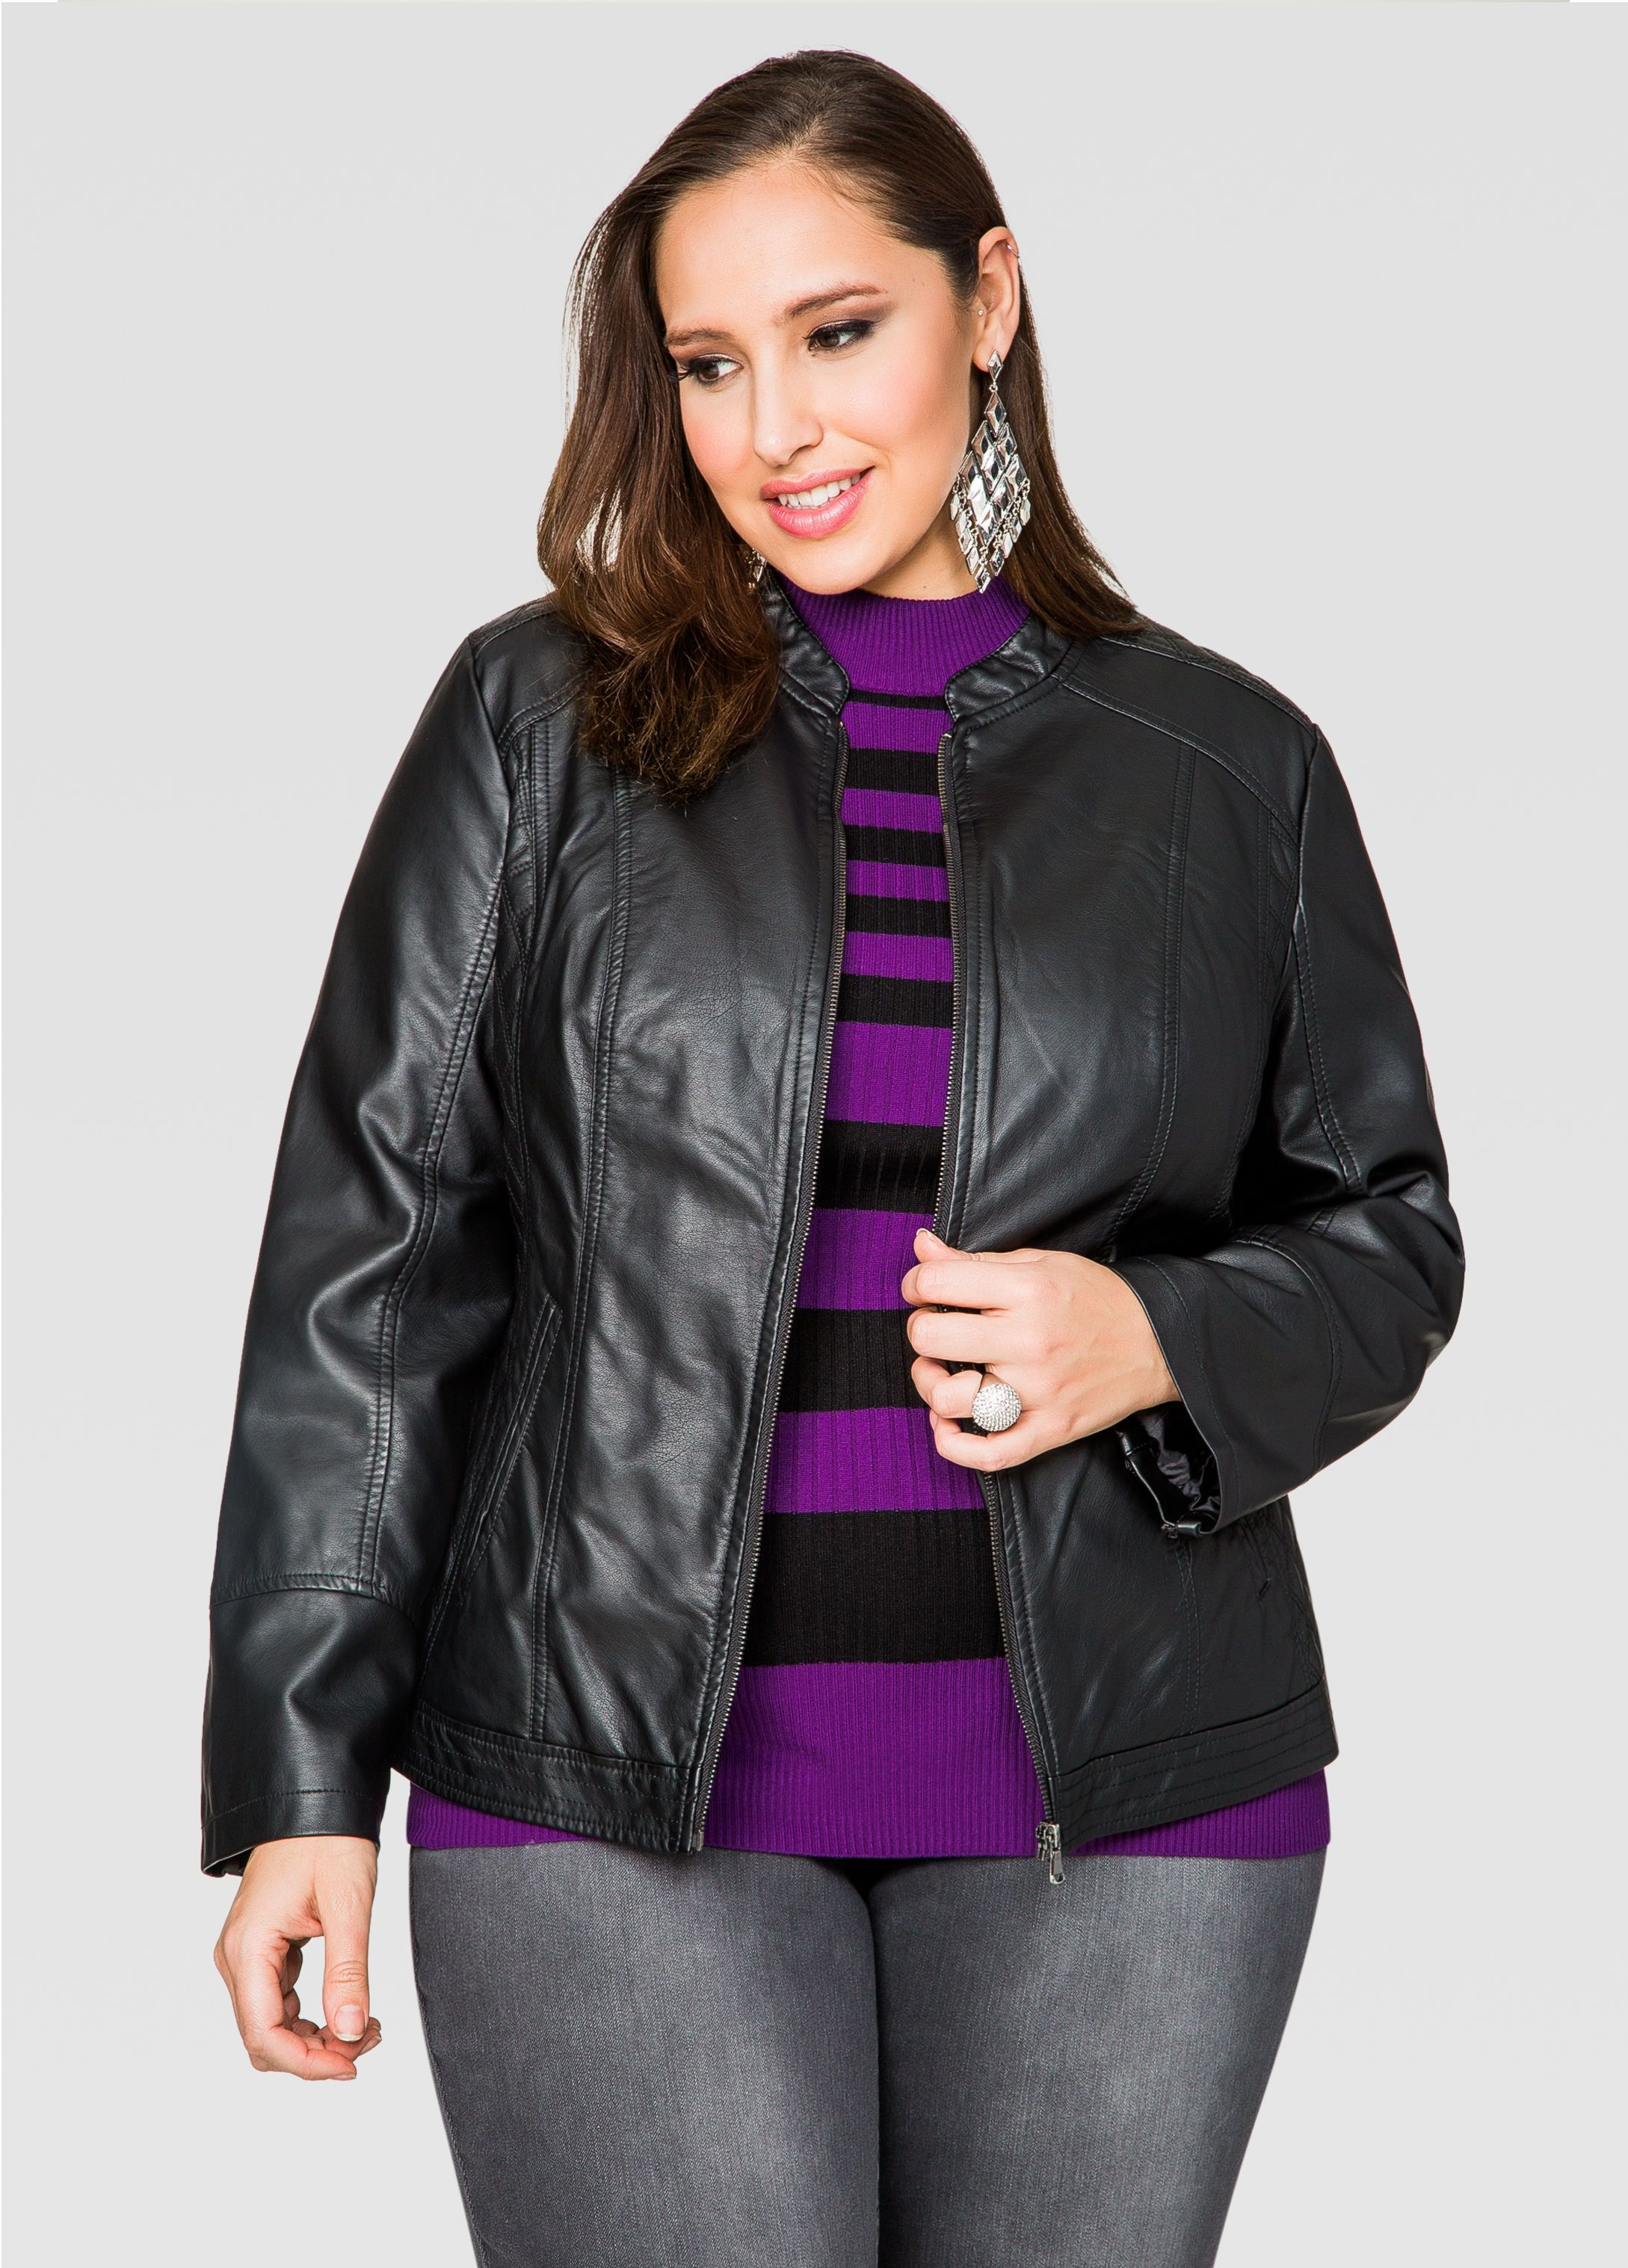 430cba36c8975 Quilted Center Zip Moto Jacket - Ashley Stewart